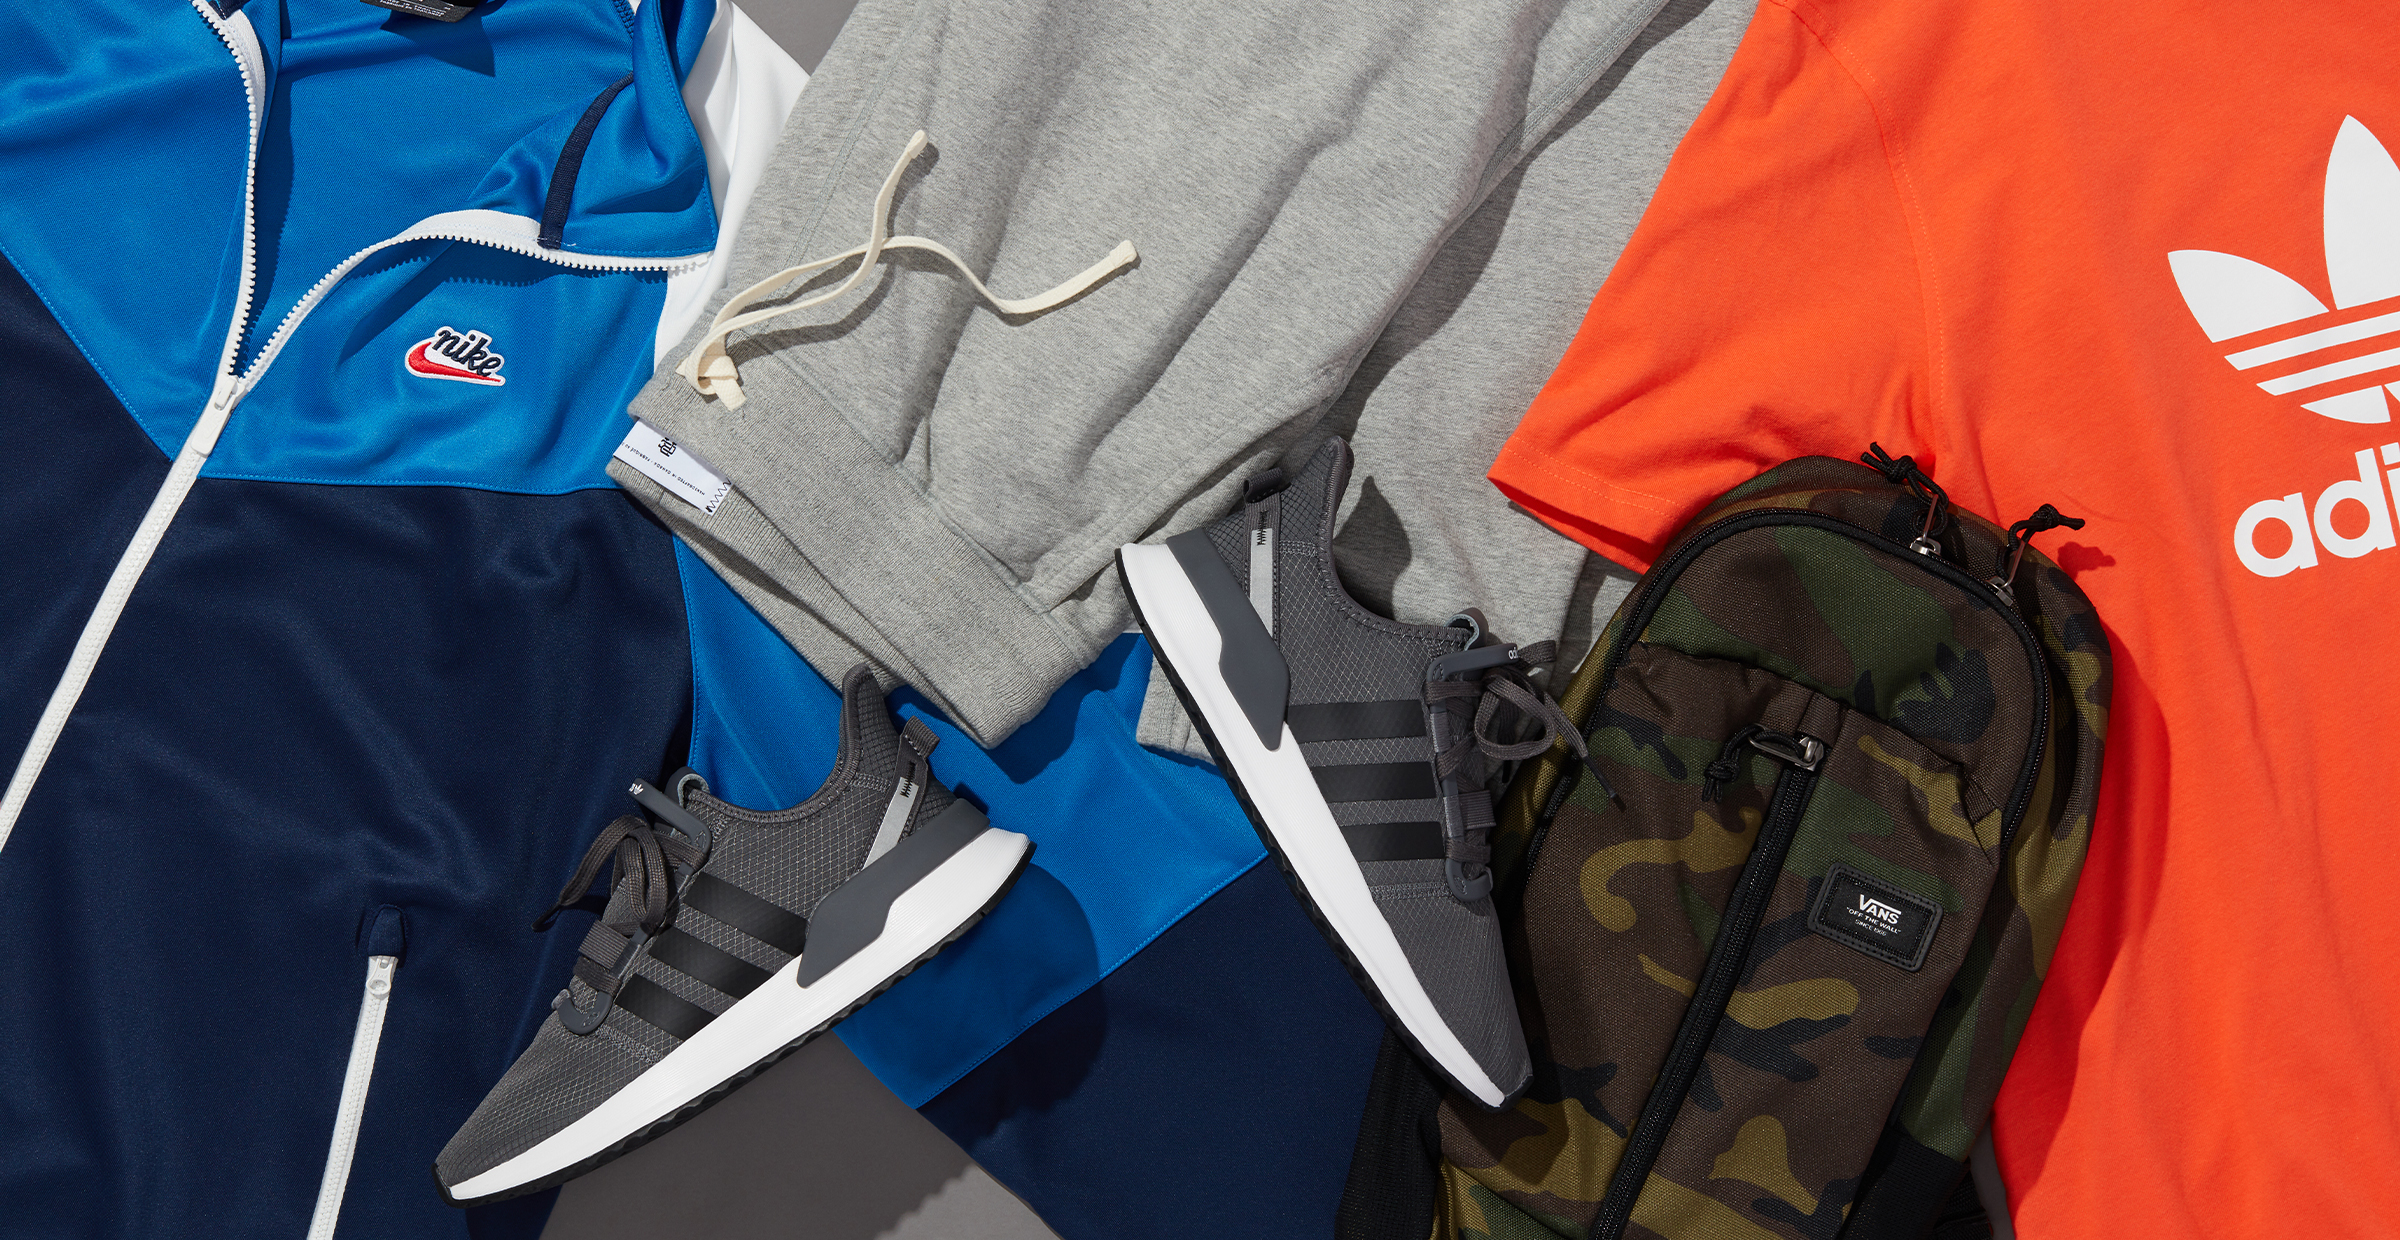 Men's winter activewear clothes